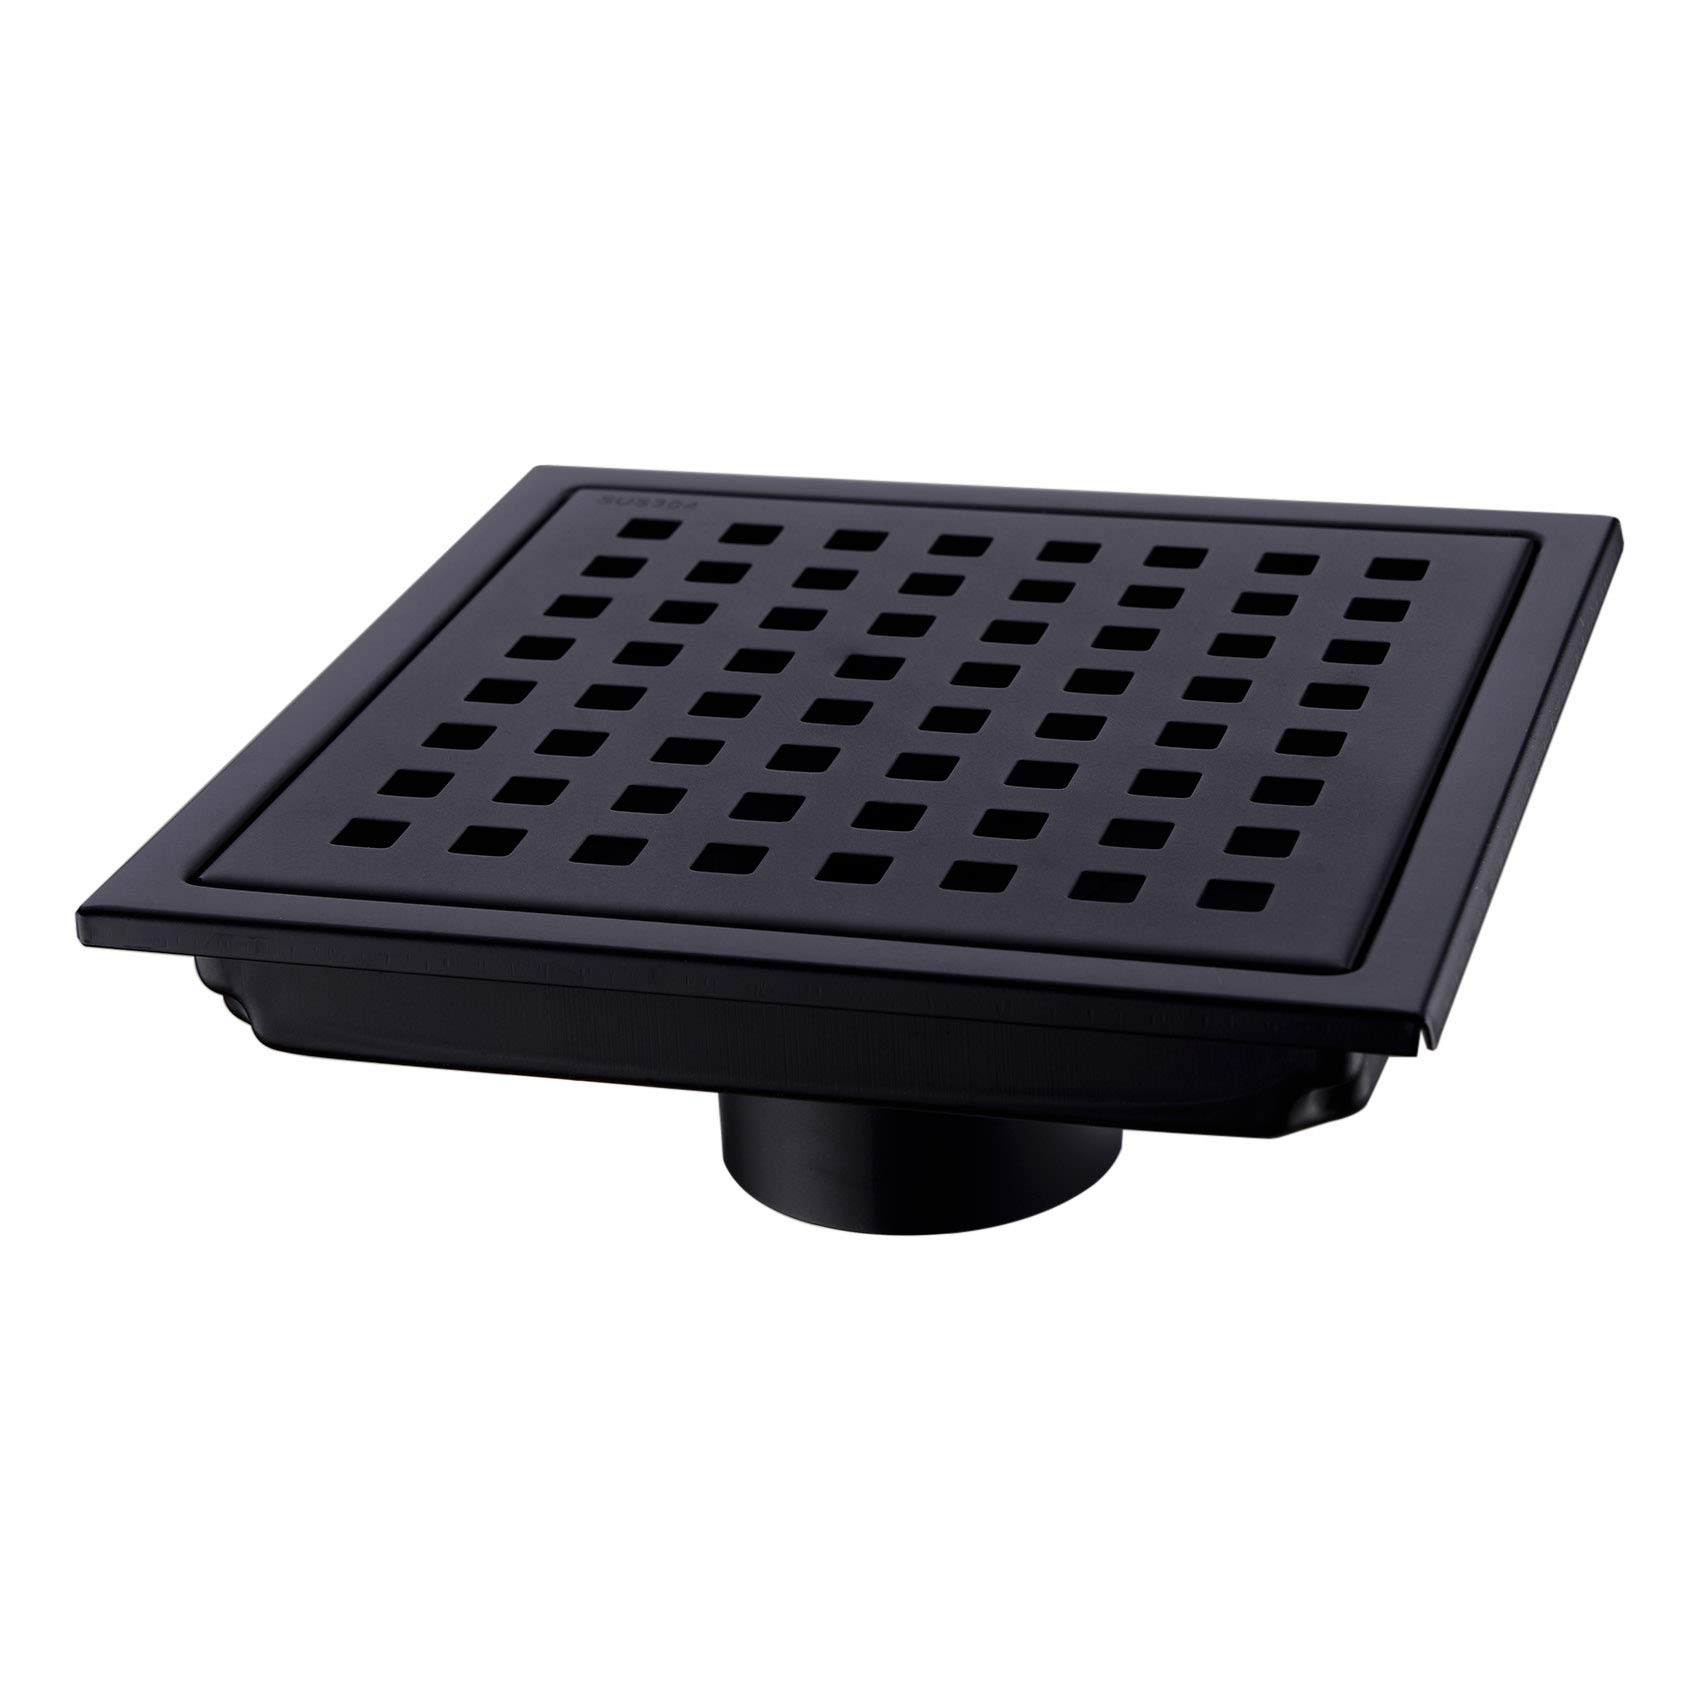 Orhemus Square Shower Floor Drain with Removable Cover Grid Grate 6 inch Long, SUS 304 Stainless Steel Black Plated Finish by Orhemus